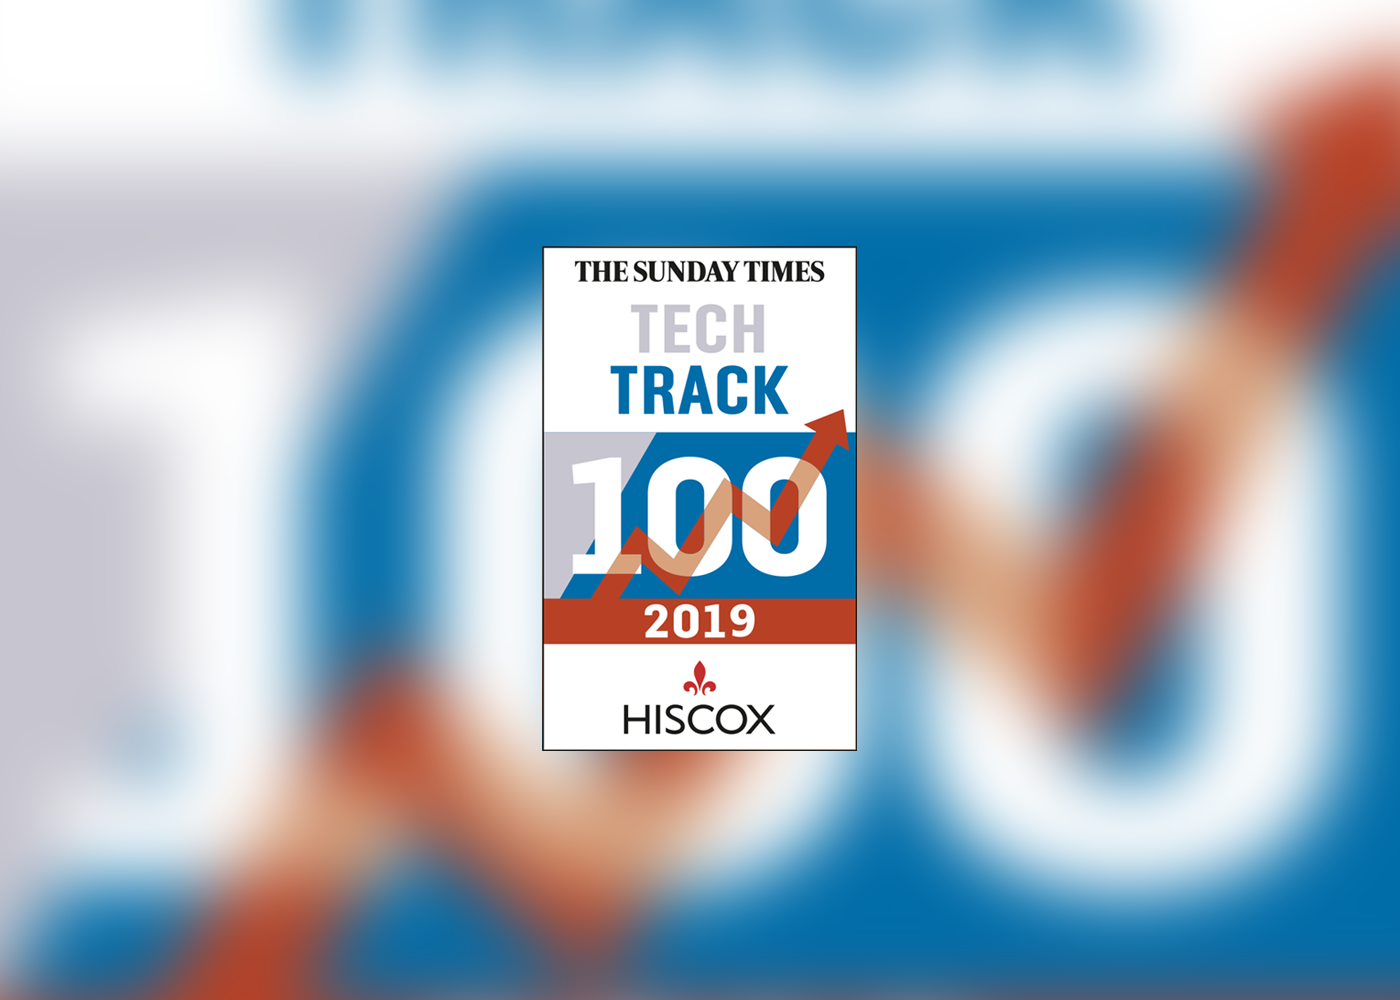 OTA Insight named UK's 17th fastest-growing private technology company in Sunday Times Hiscox Tech Track 100